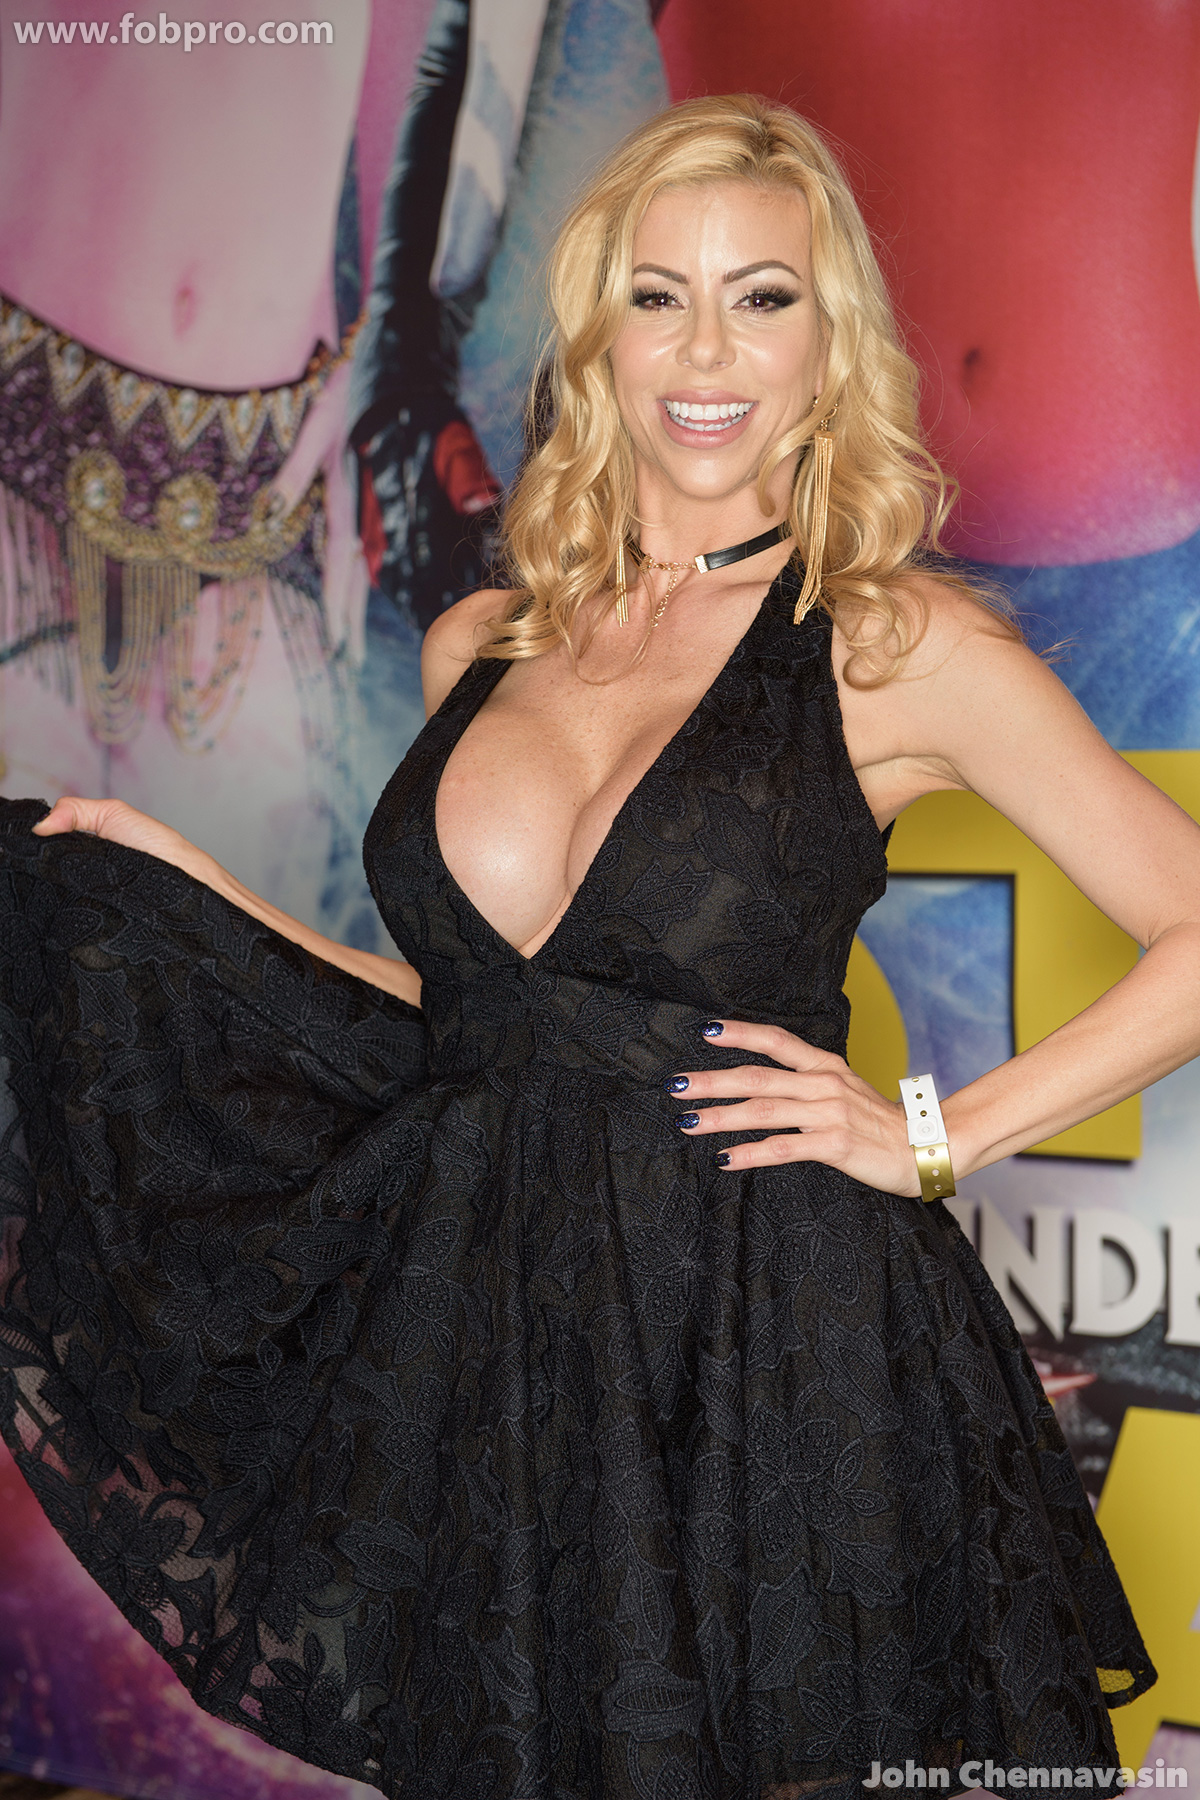 Adult entertainment expo 2017 and avn in vegas feat cece september 5